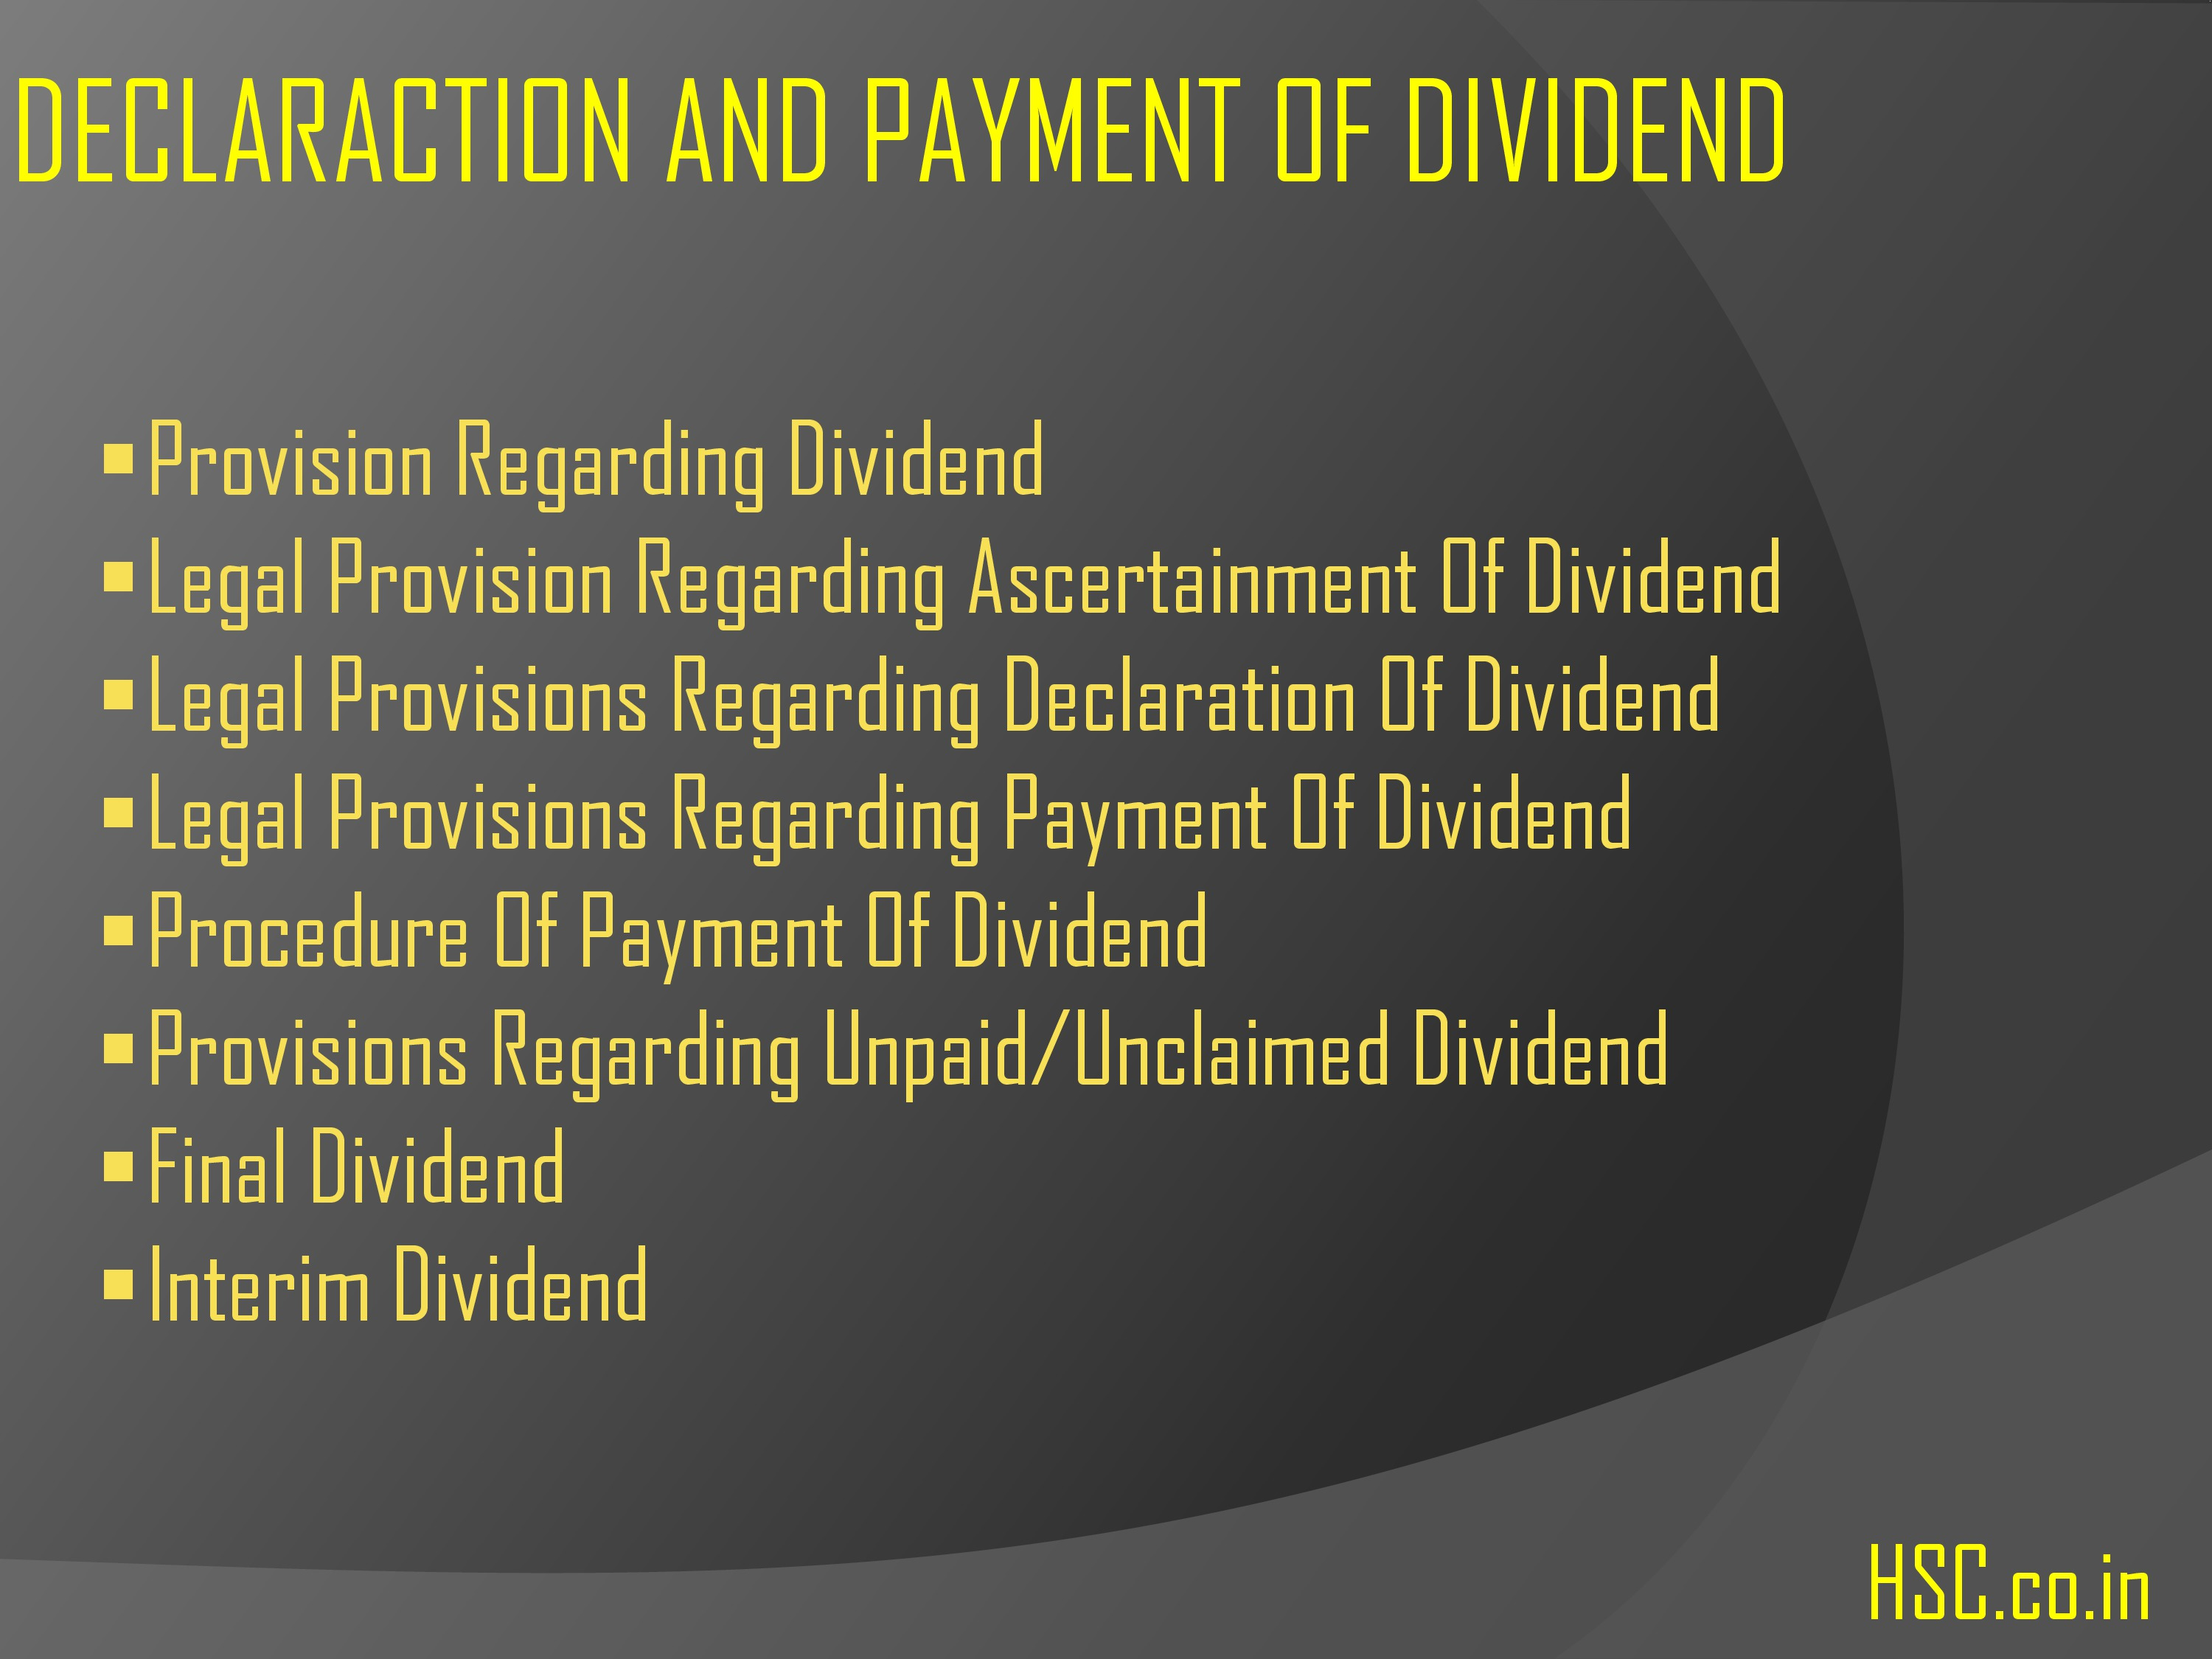 Declaration and Payment-0